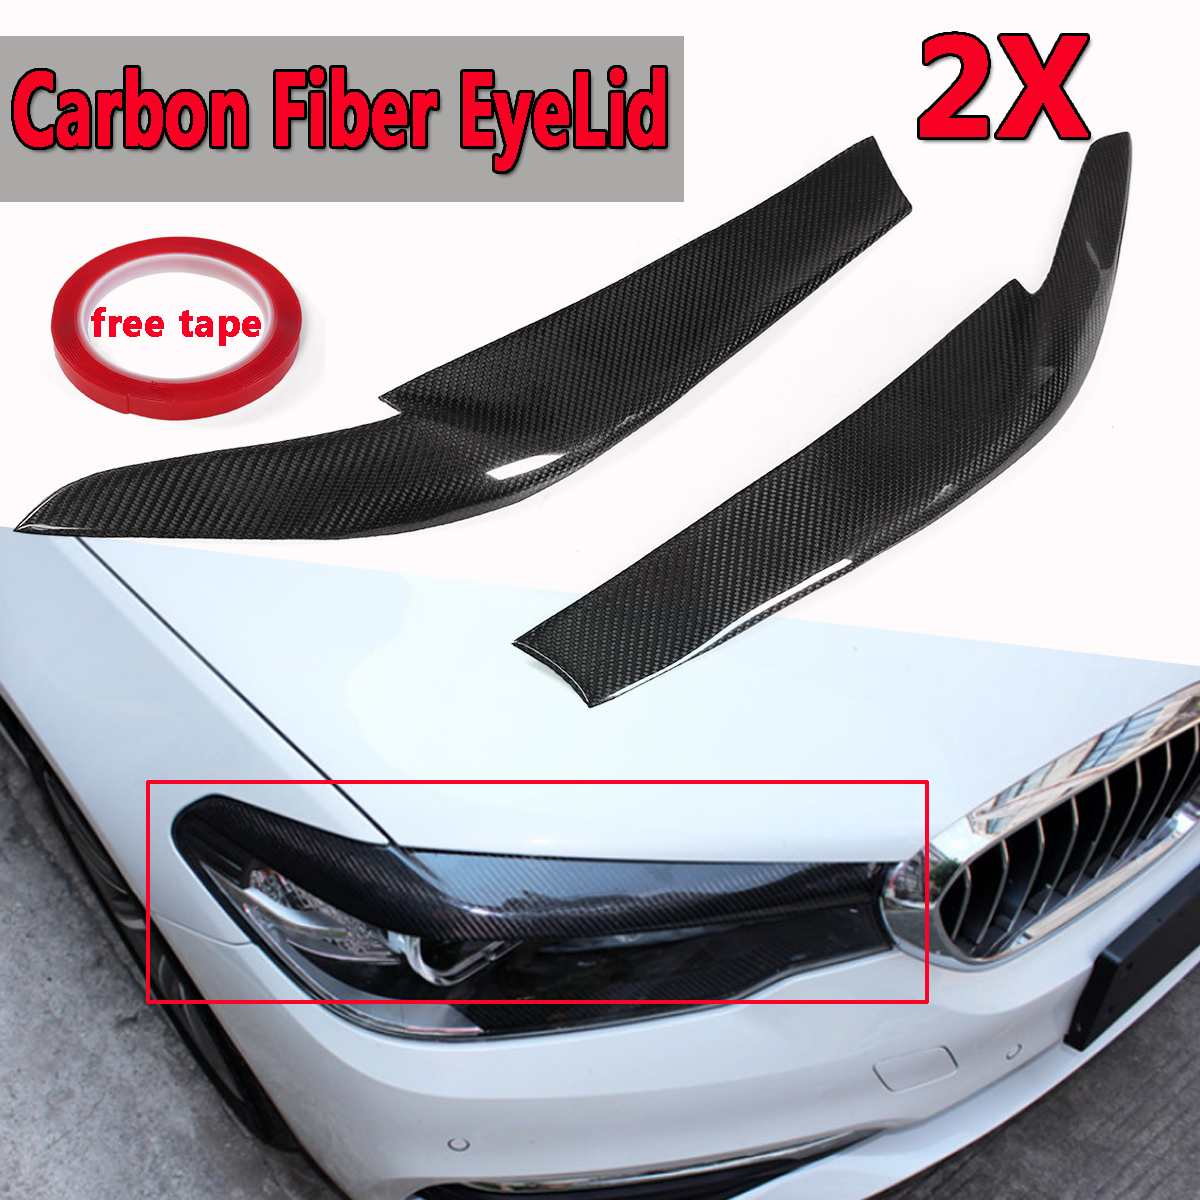 Real Carbon Fiber Car Front Headlight EyeLids Eyebrows Cover For <font><b>BMW</b></font> <font><b>G30</b></font> <font><b>530i</b></font> 540i M550i 2017-2018 Head Lamp Cover Caps Eye Lid image